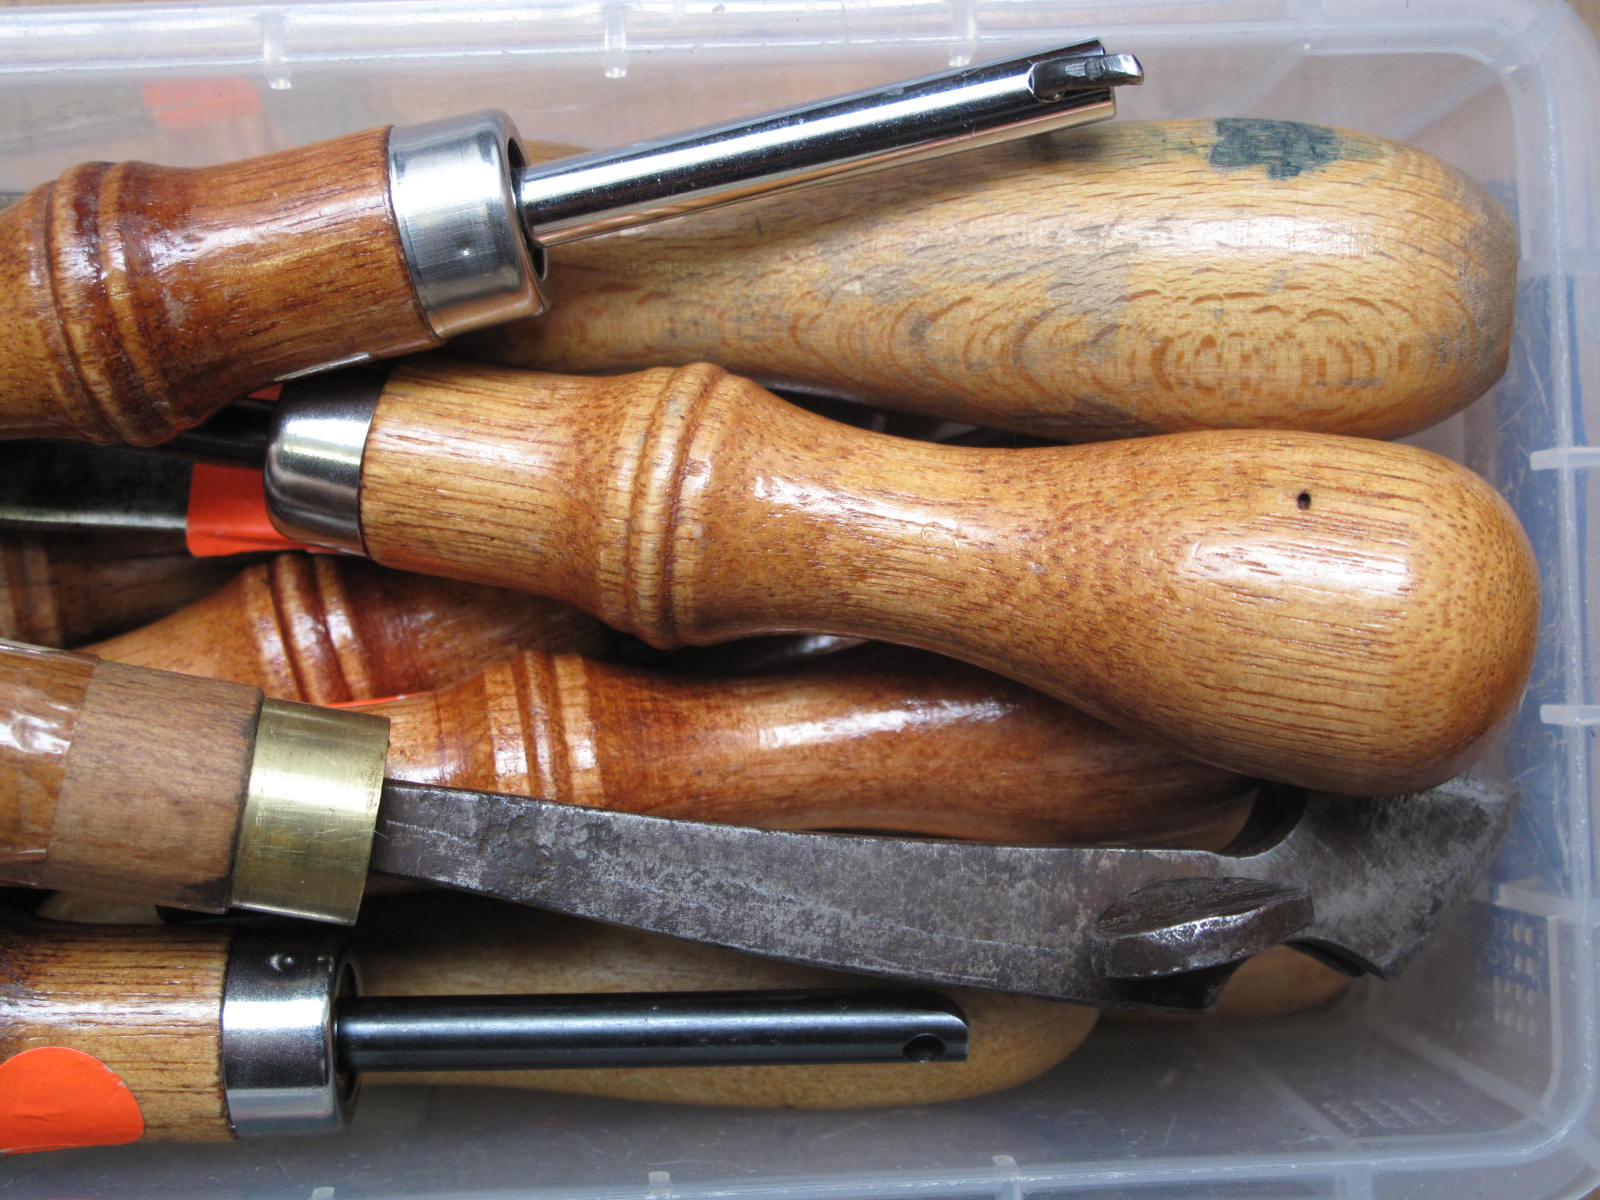 Tools can be enigmatic - functional, specific, strangely named. Saddlery tools - co-opted for fine leather work - are no exception;is that a stitching fork or a pricking iron? Groover, channeller or creaser?